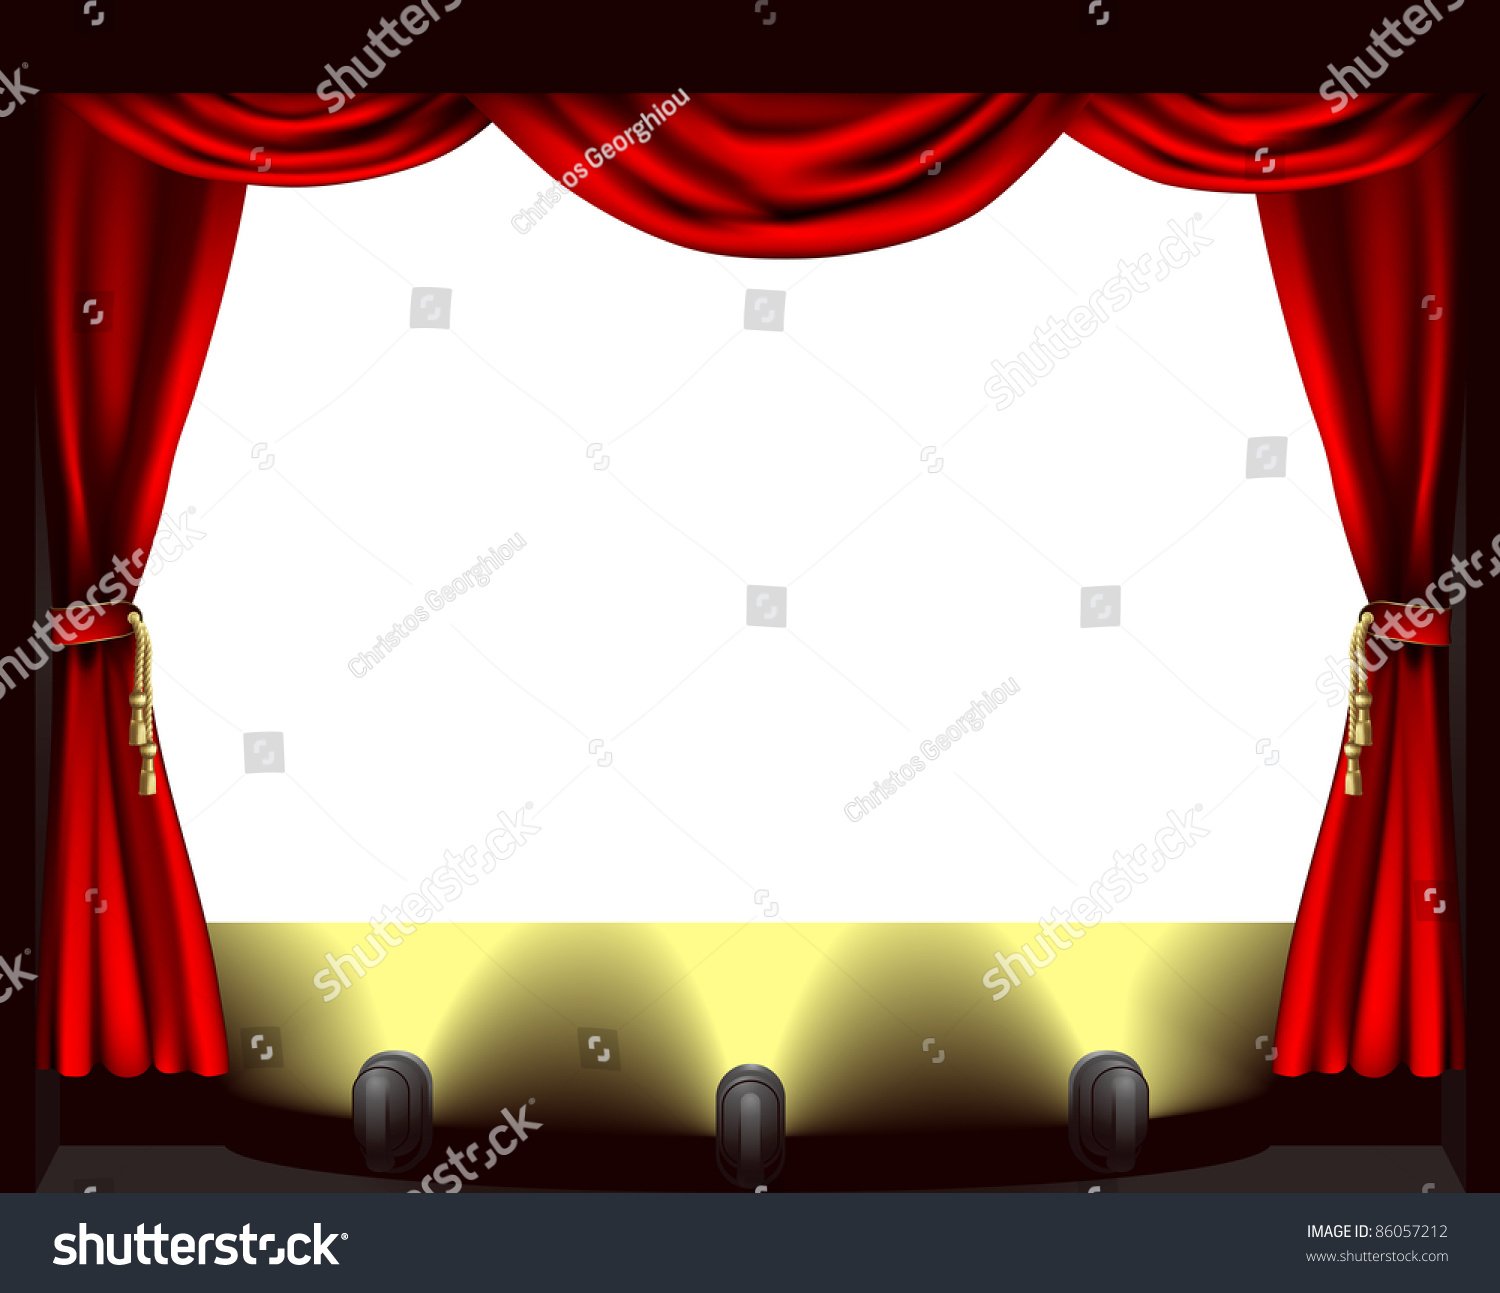 Empty stage curtains with lights - A Theatre Stage Lights And Curtain Illustration